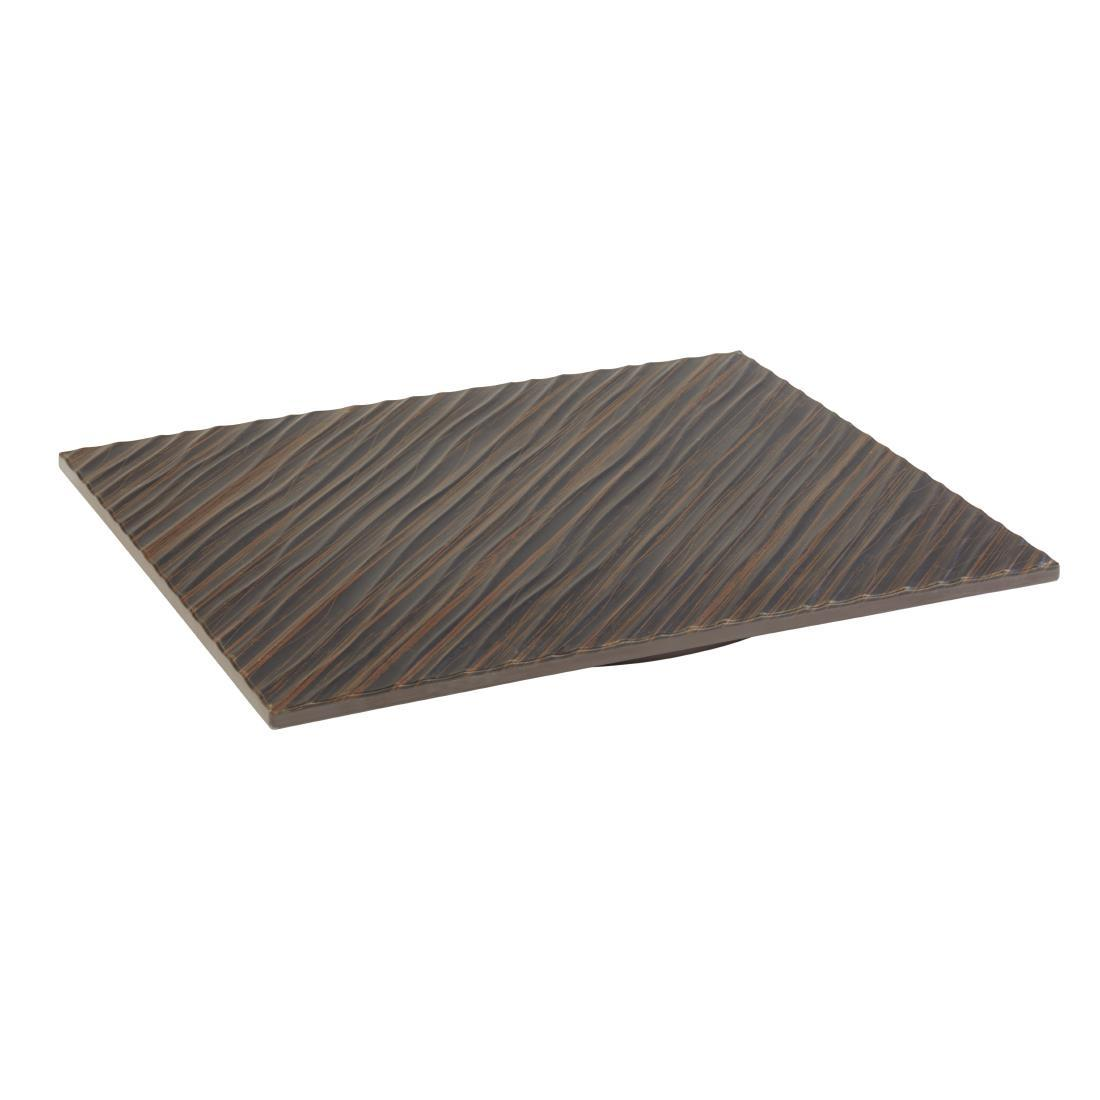 DT751 - APS+ Tiles Tray Brown GN1/2 - Each - DT751